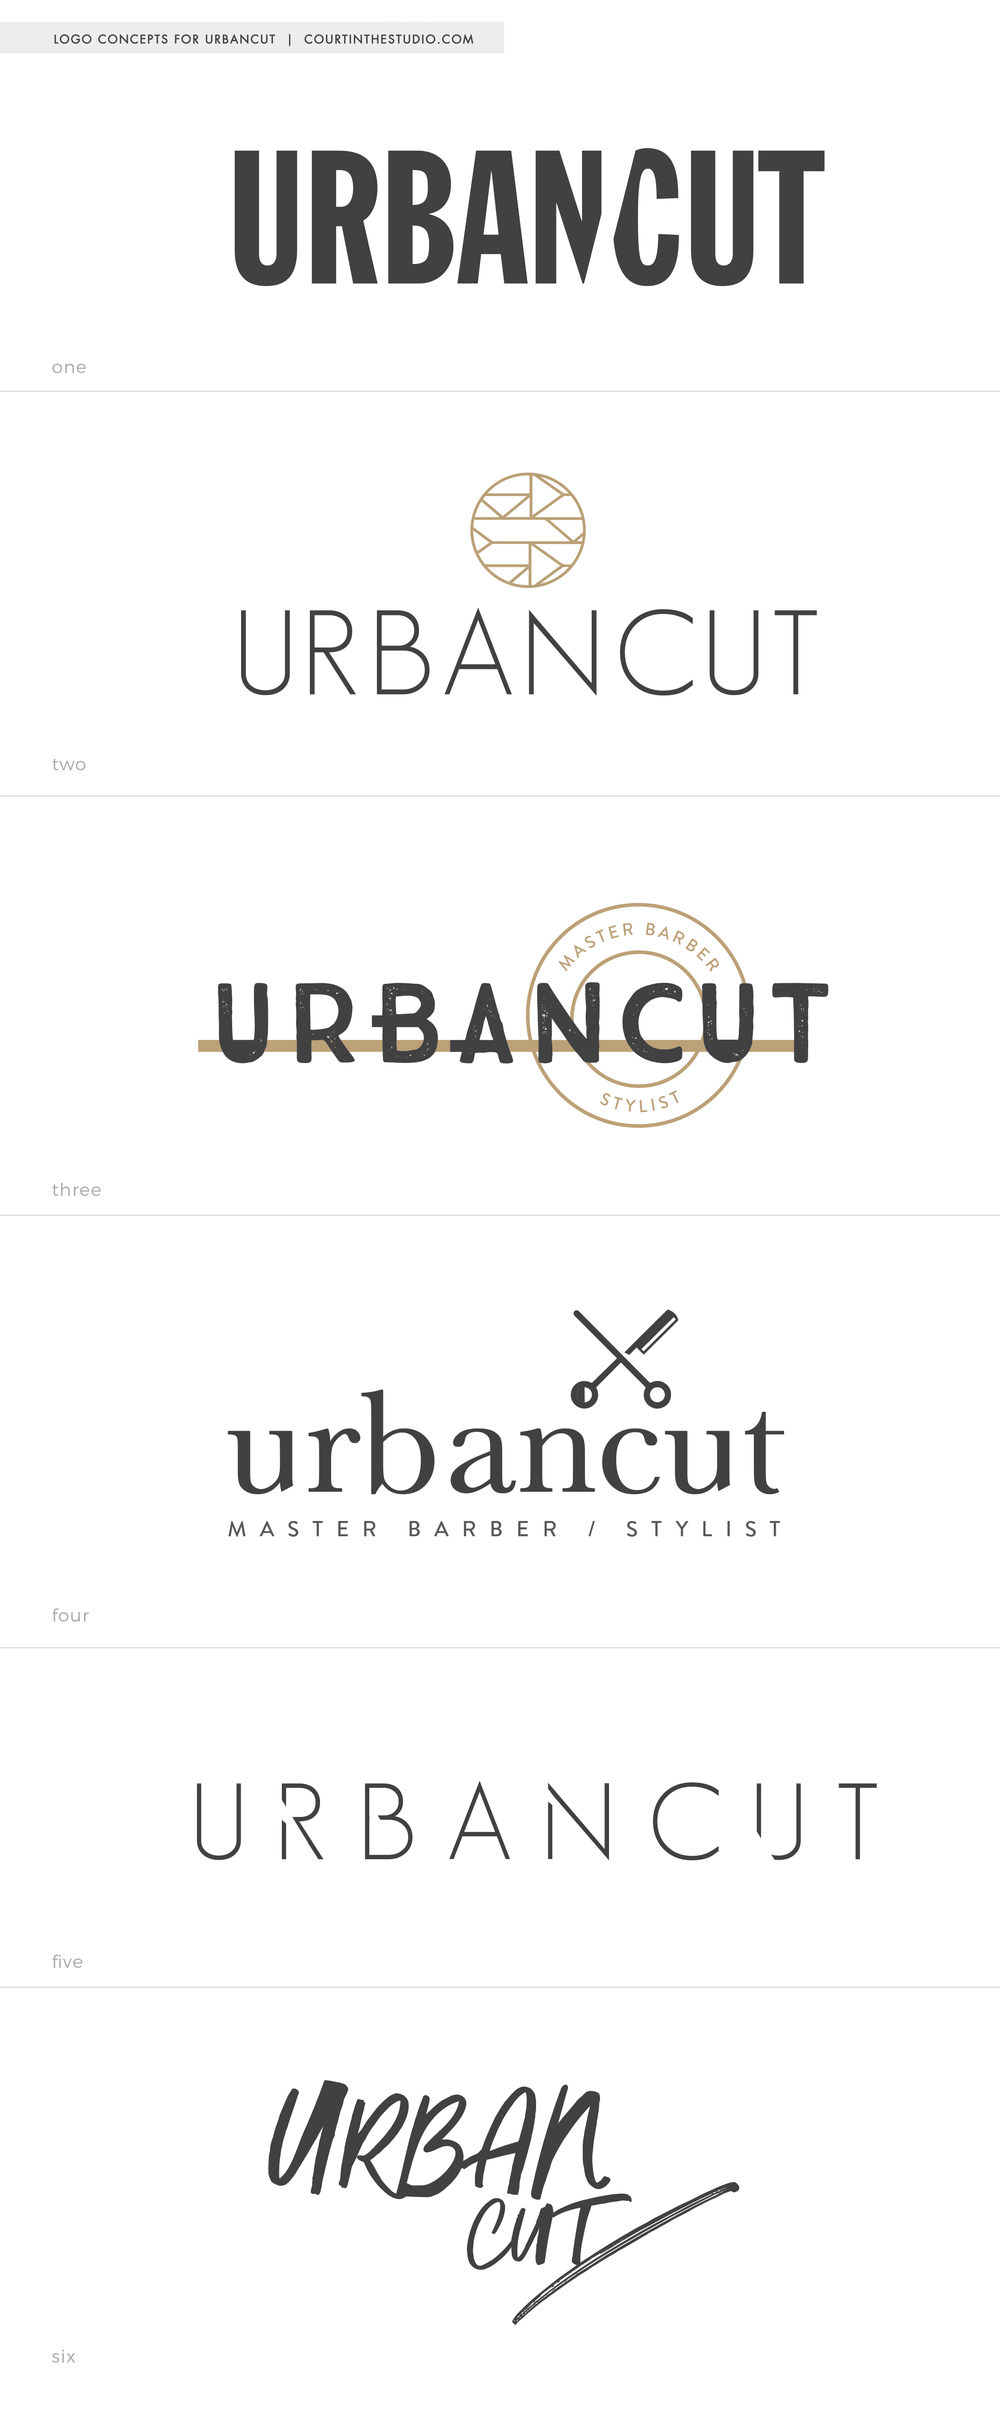 A sample of 1st design concepts for my client  Urbancut